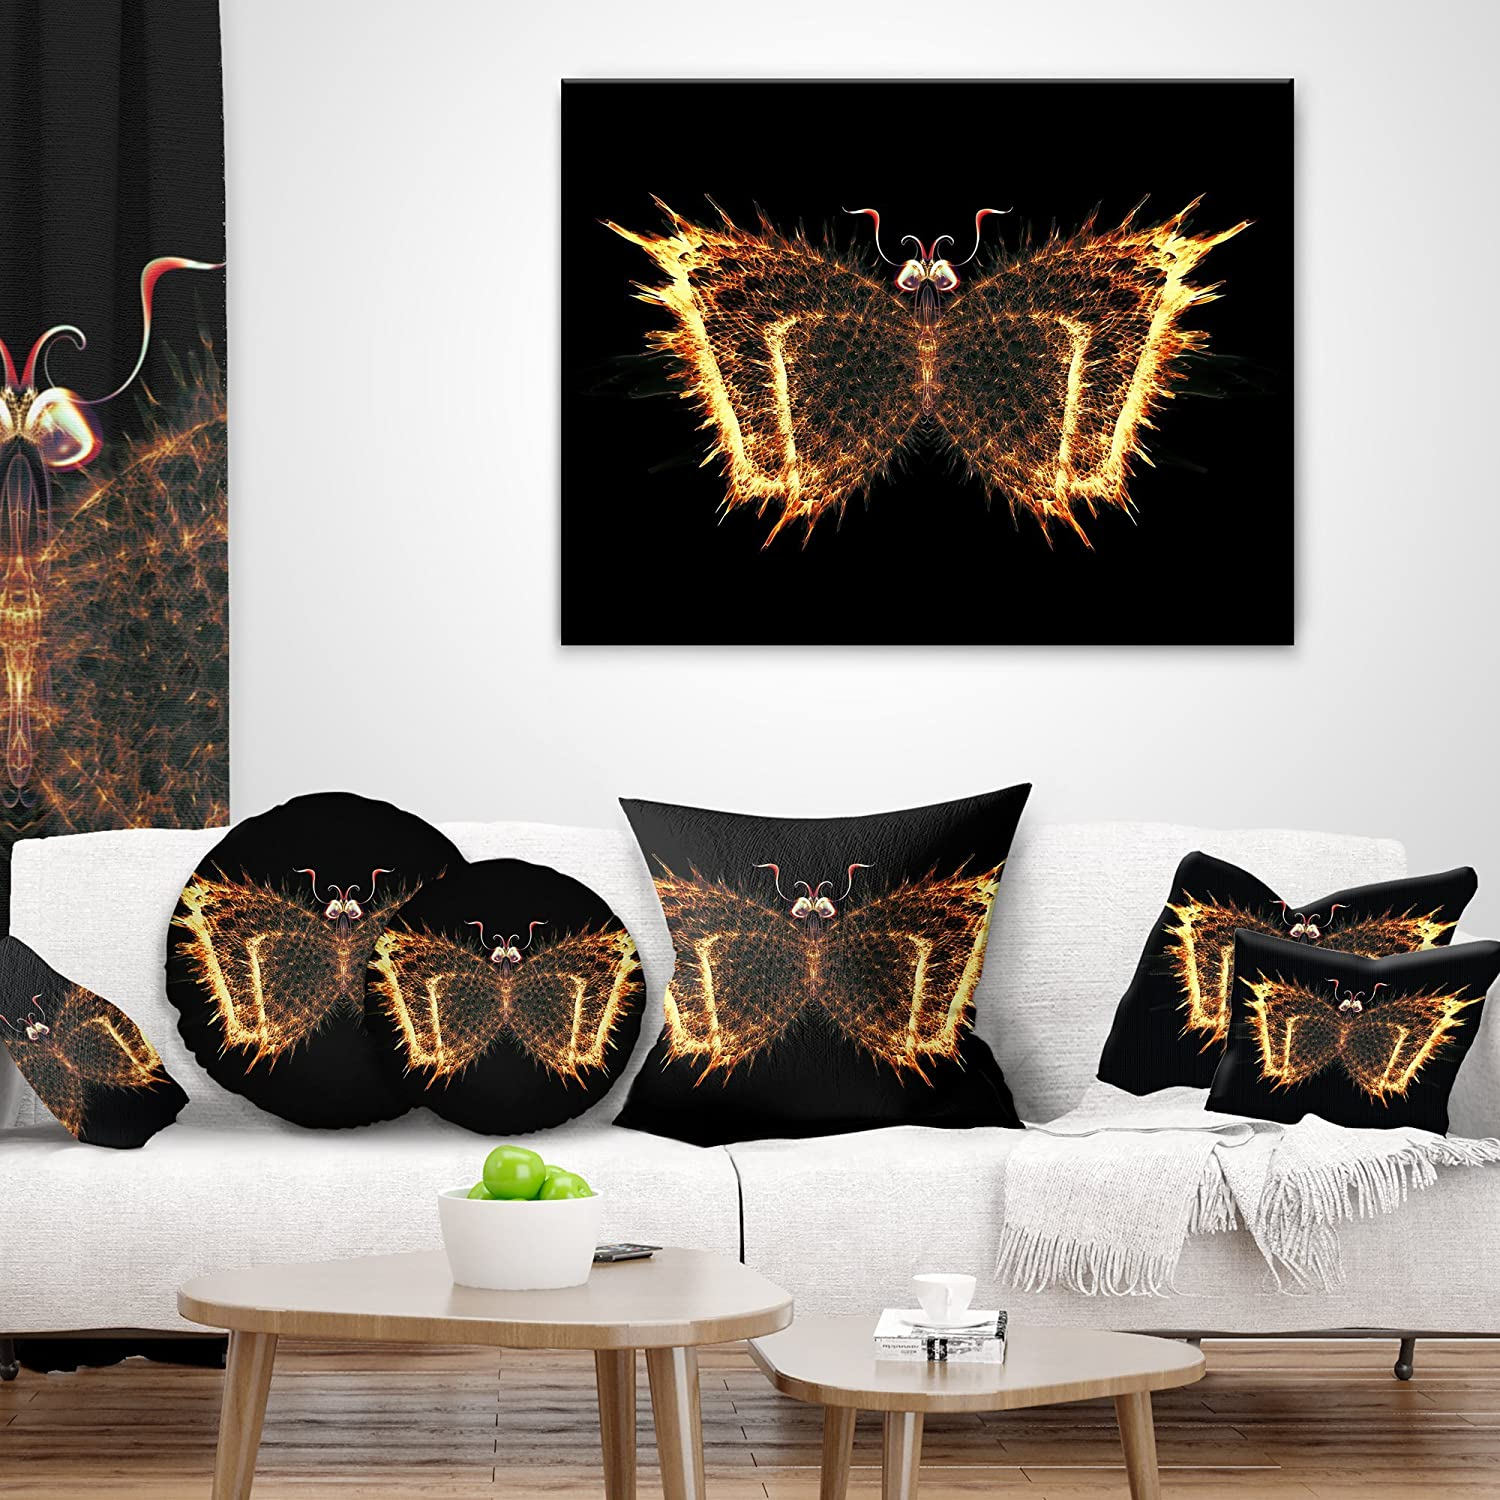 x 26 in in Insert Printed On Both Side Designart CU8653-26-26 Fire Fractal Butterfly in Dark Abstract Cushion Cover for Living Room Sofa Throw Pillow 26 in